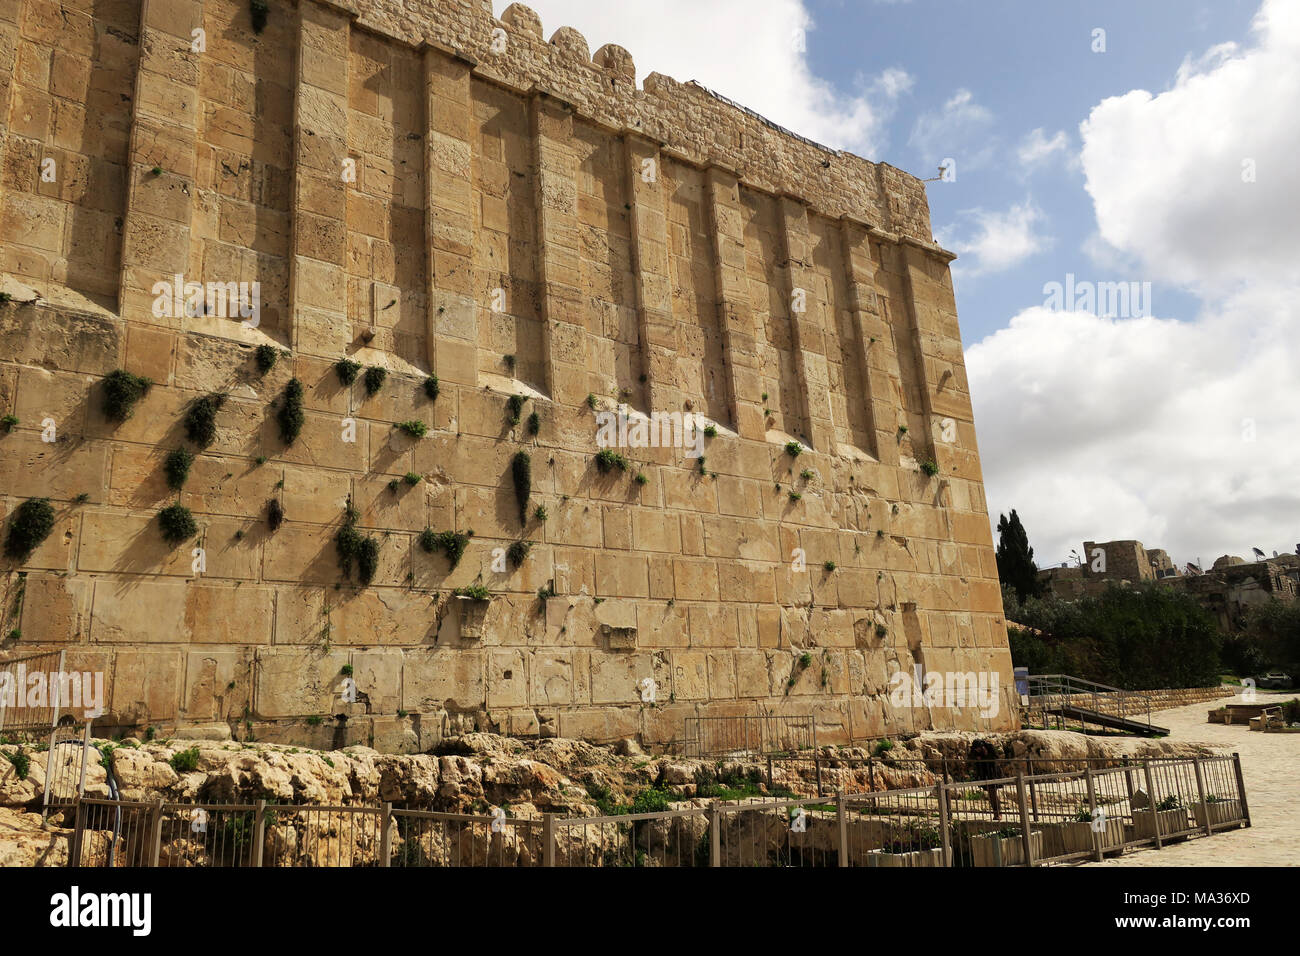 Outside the Tomb of the Patriarchs in Hebron - Stock Image